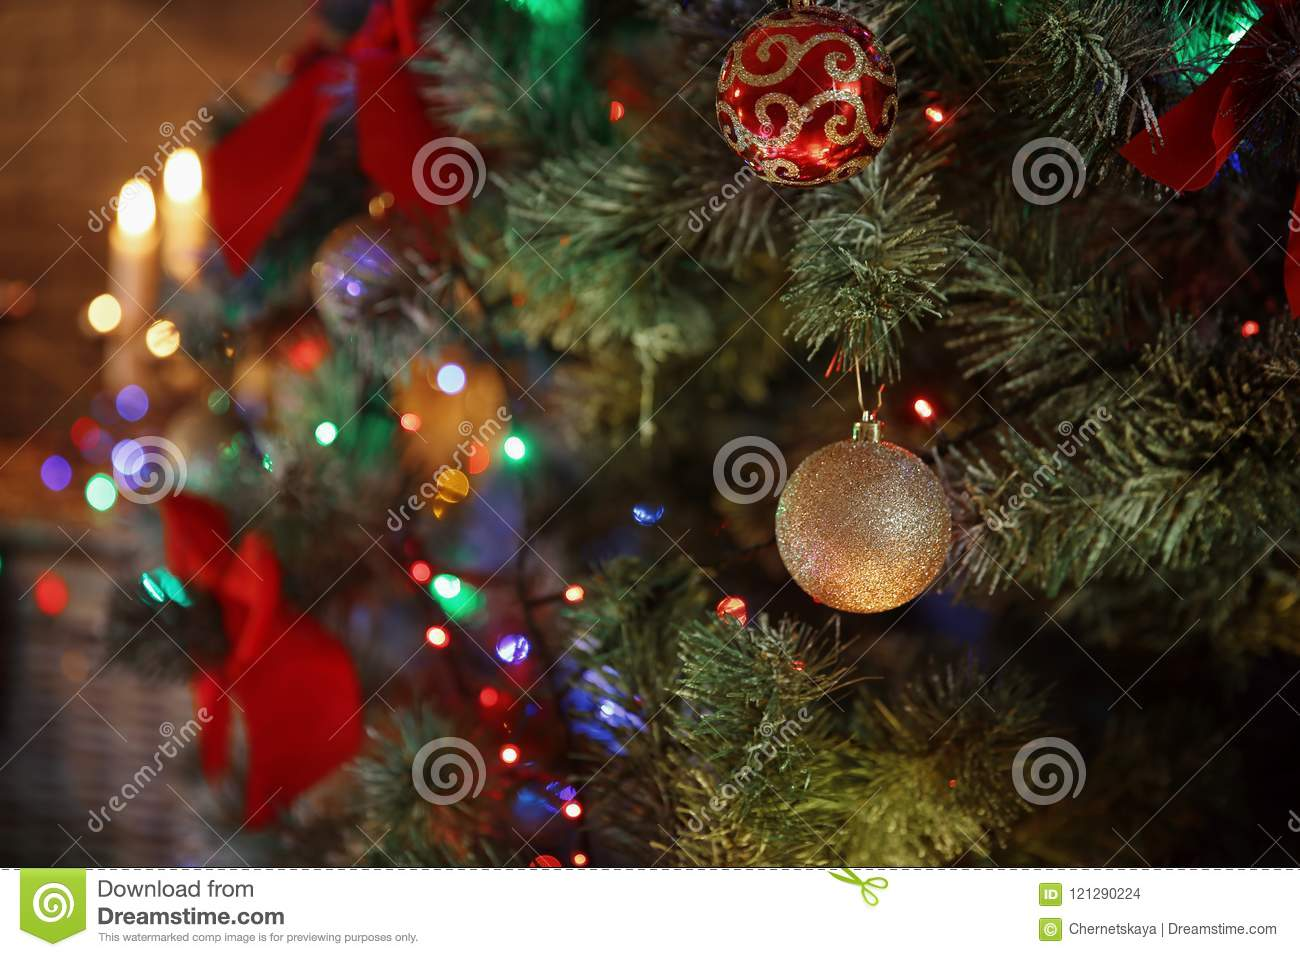 Christmas Decoration Indoors.Christmas Tree With Beautiful Decorations Indoors Stock